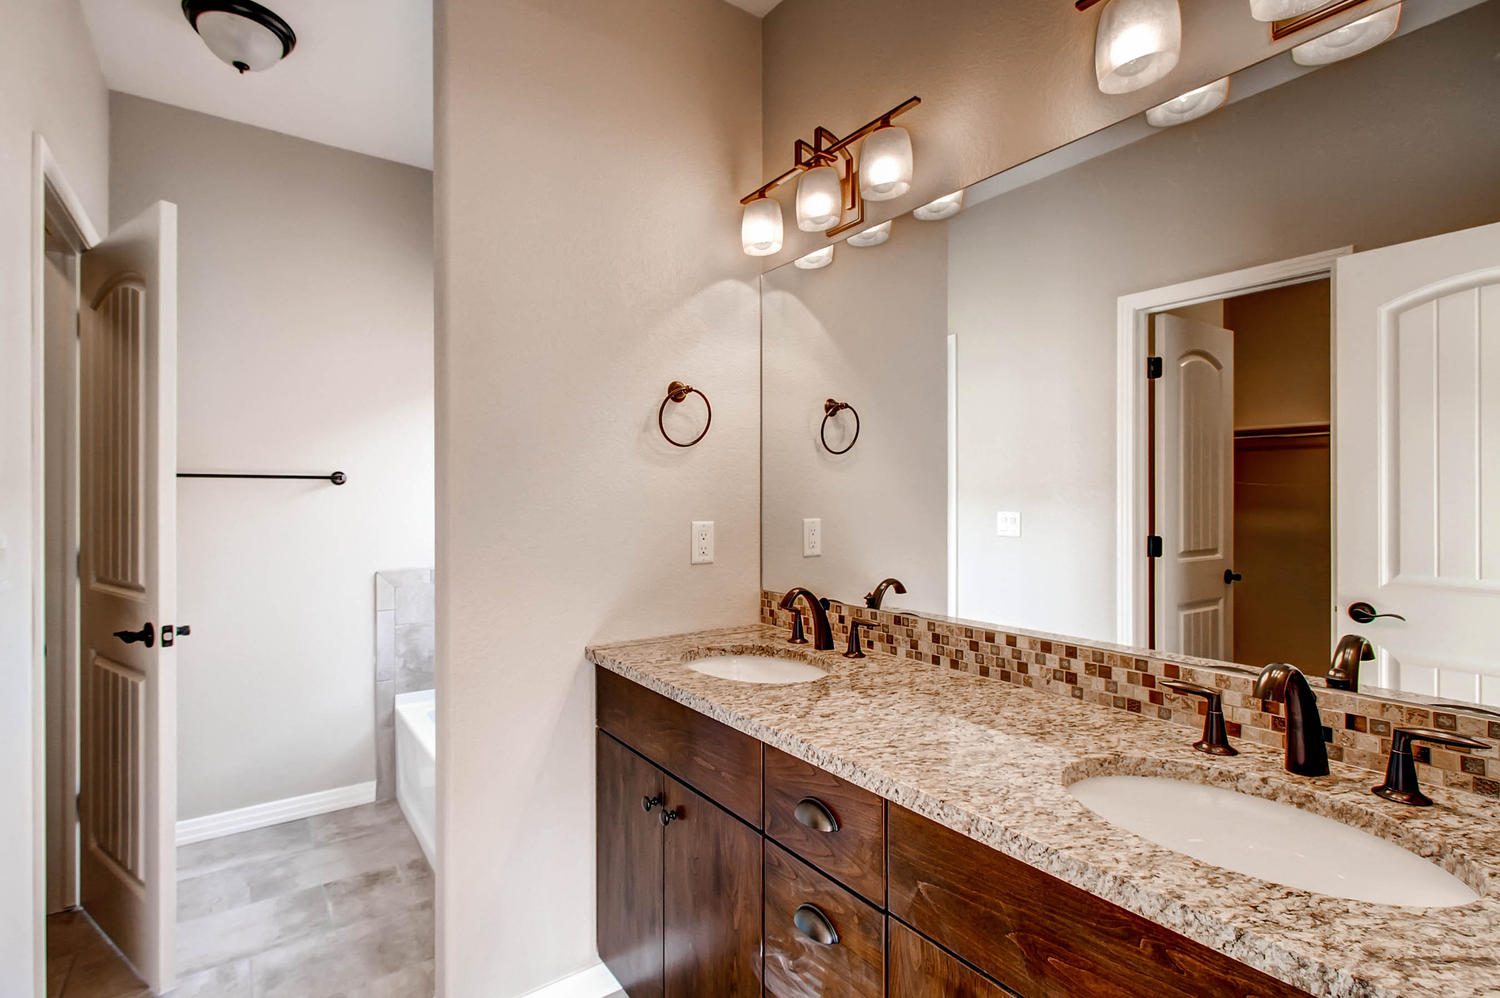 105-Greeley-Blvd-Palmer-Lake-large-014-11-Master-Bathroom-1500x999-72dpi